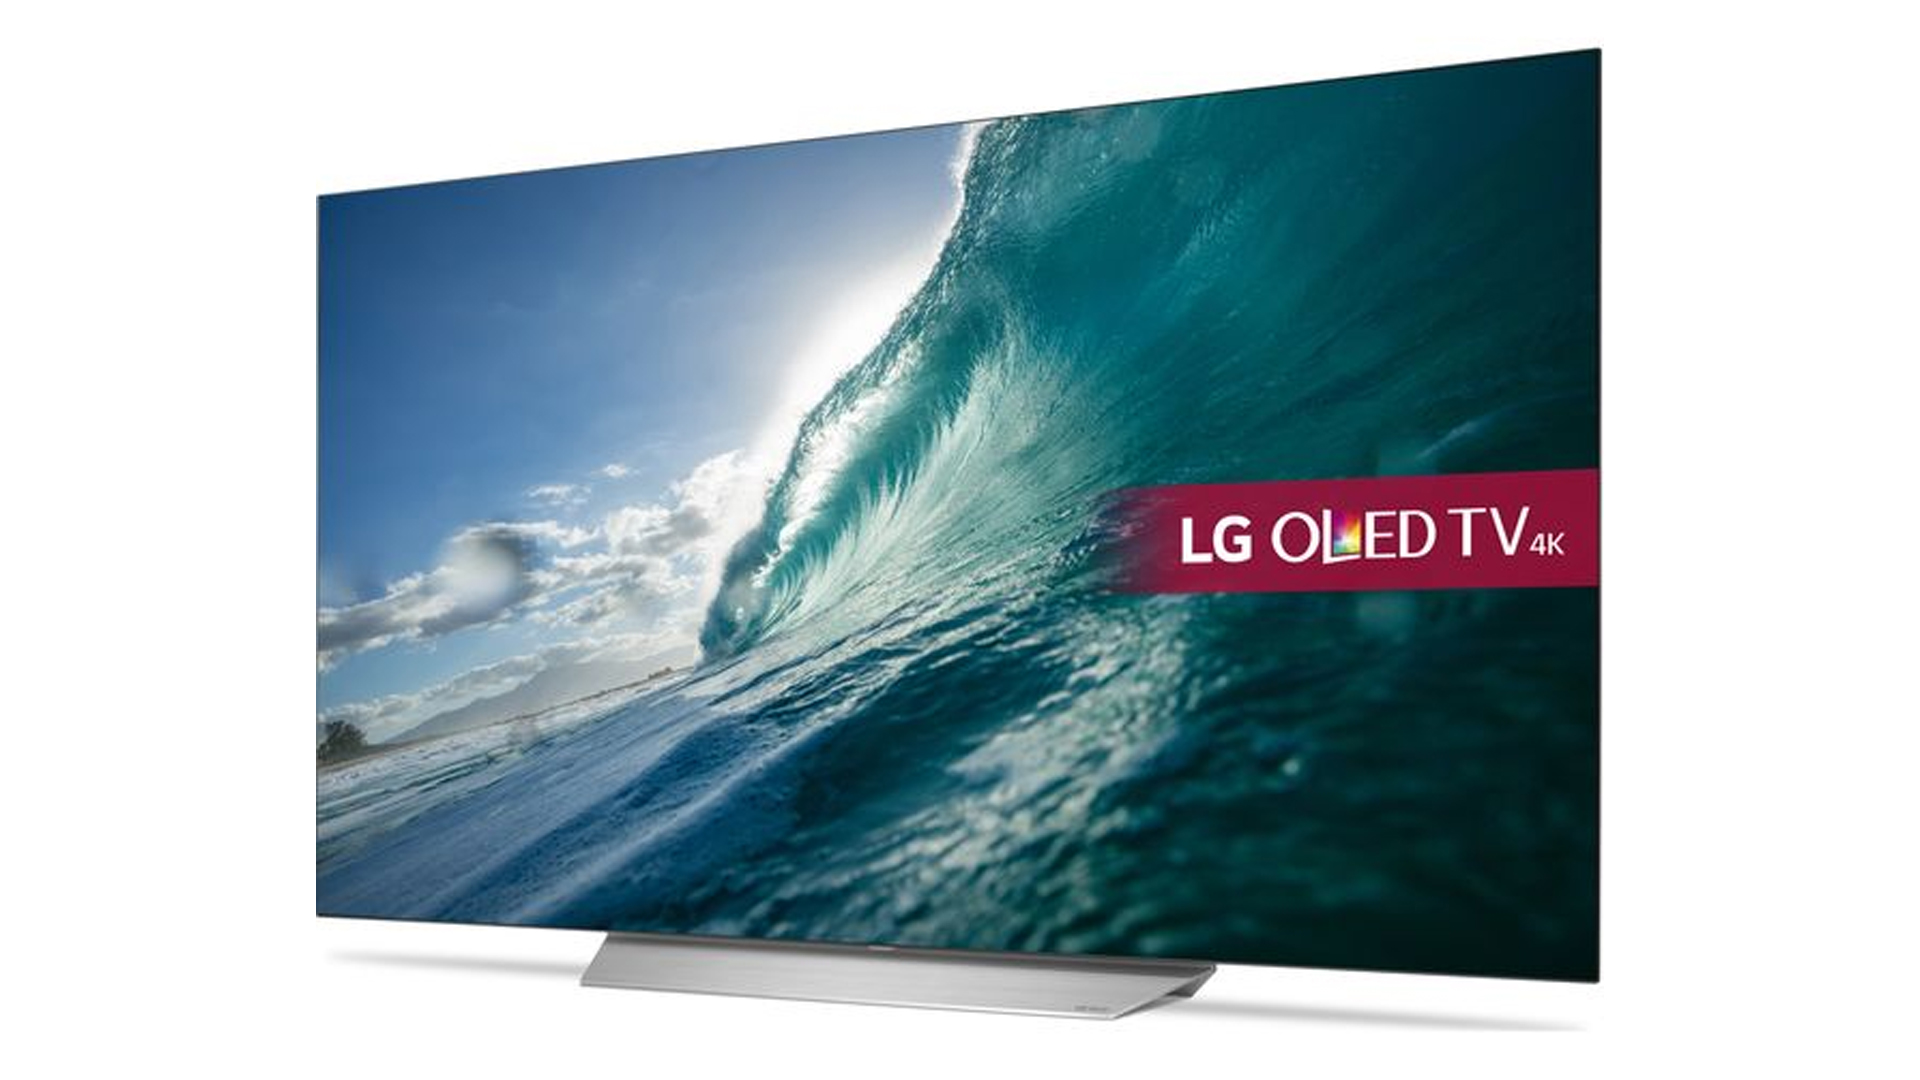 LG's 55-inch 4K OLED set is down to its cheapest price yet